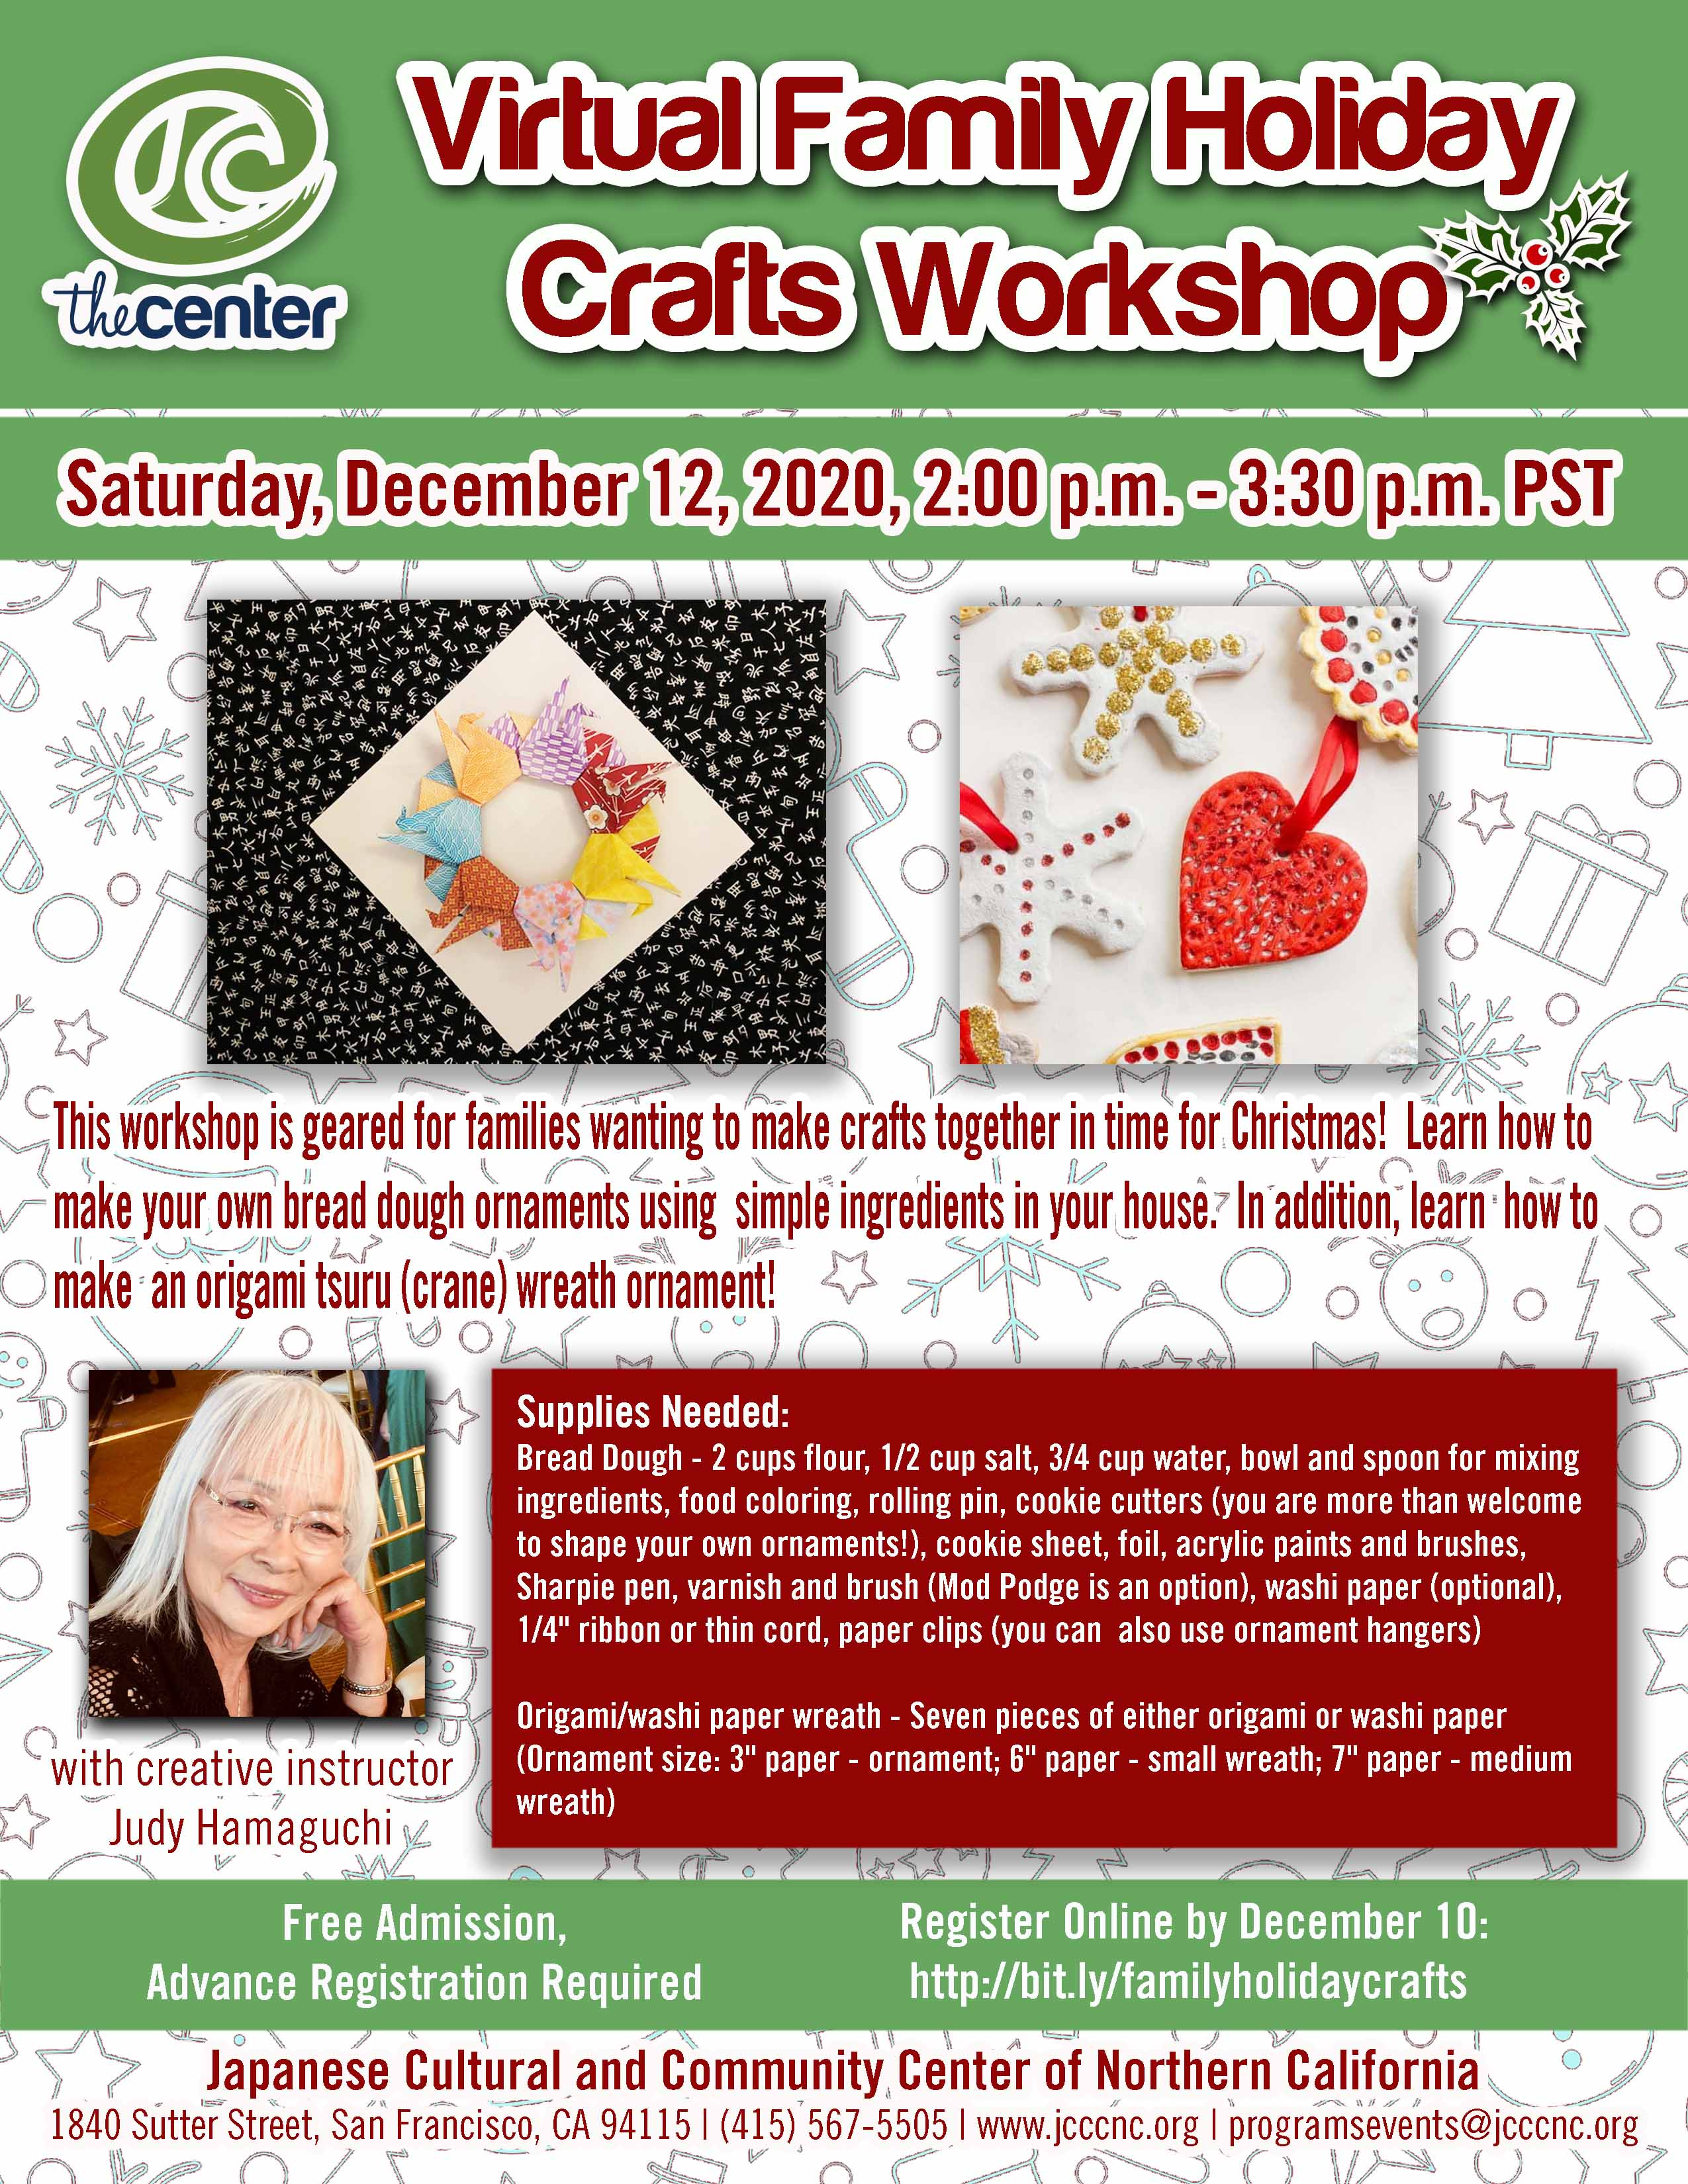 Family Holiday Crafts Workshop